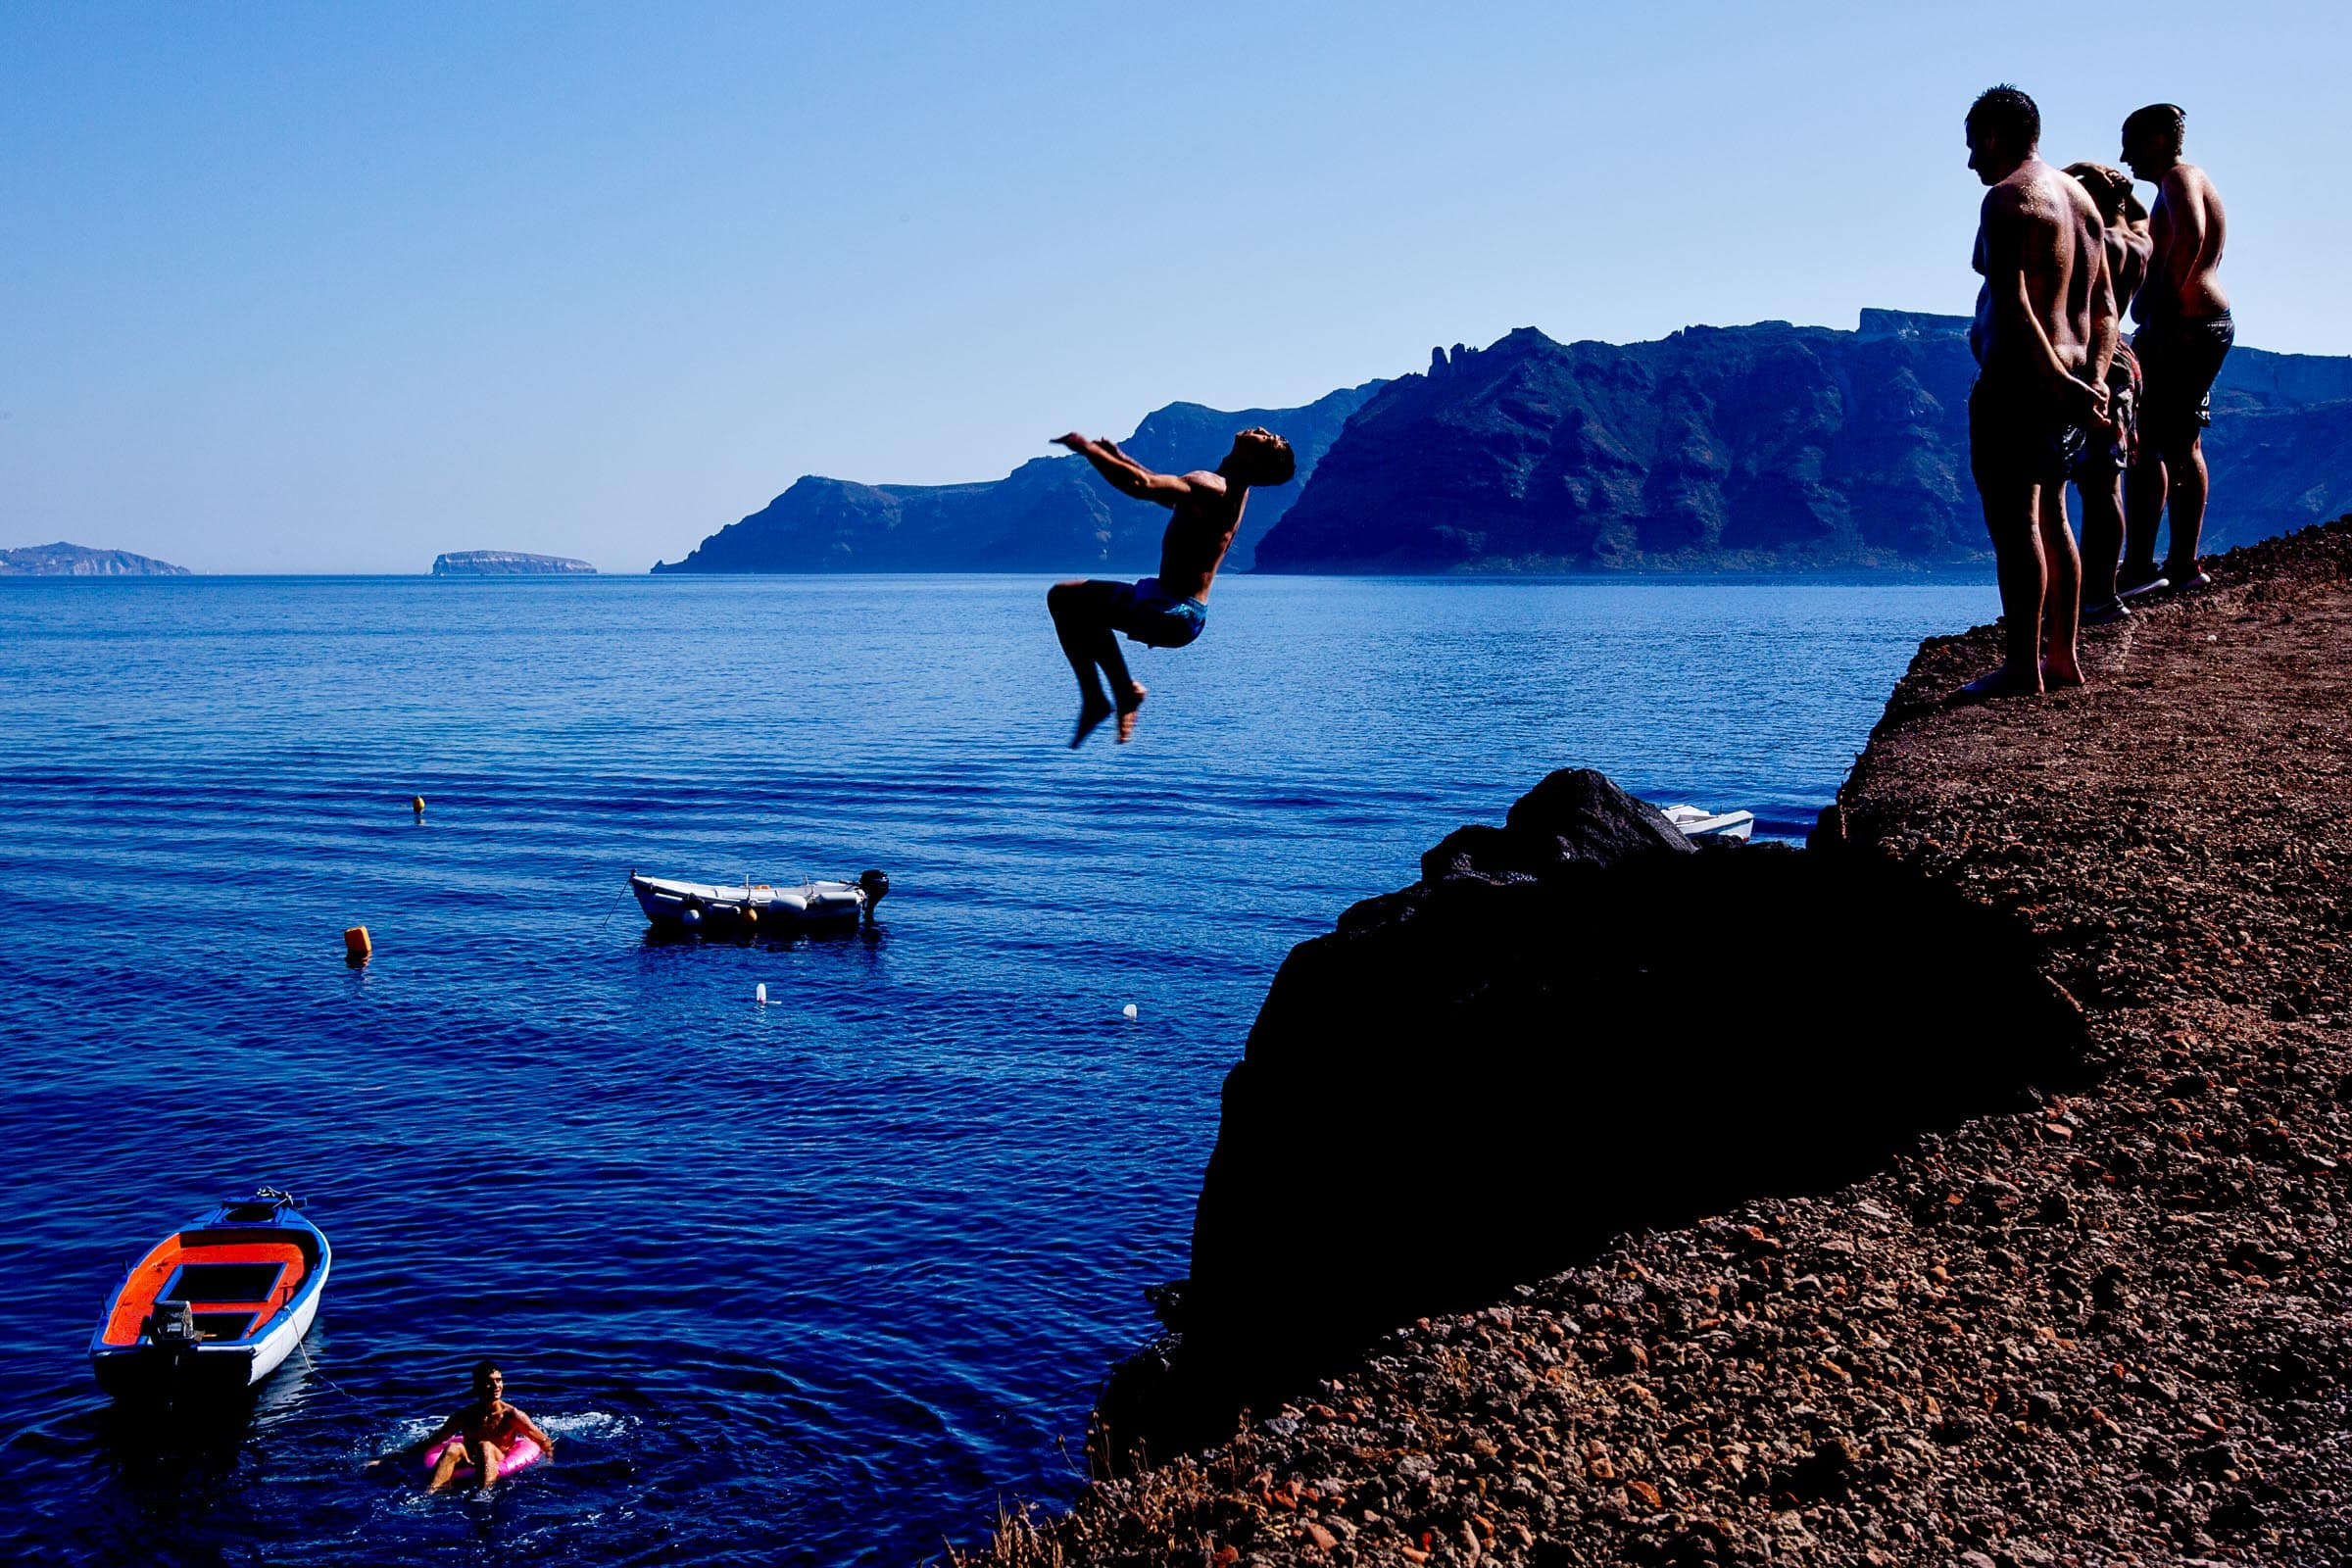 Men flipping backwards of a massive cliff into the ocean while photographers are exploring Santorini Engagement photo ideas